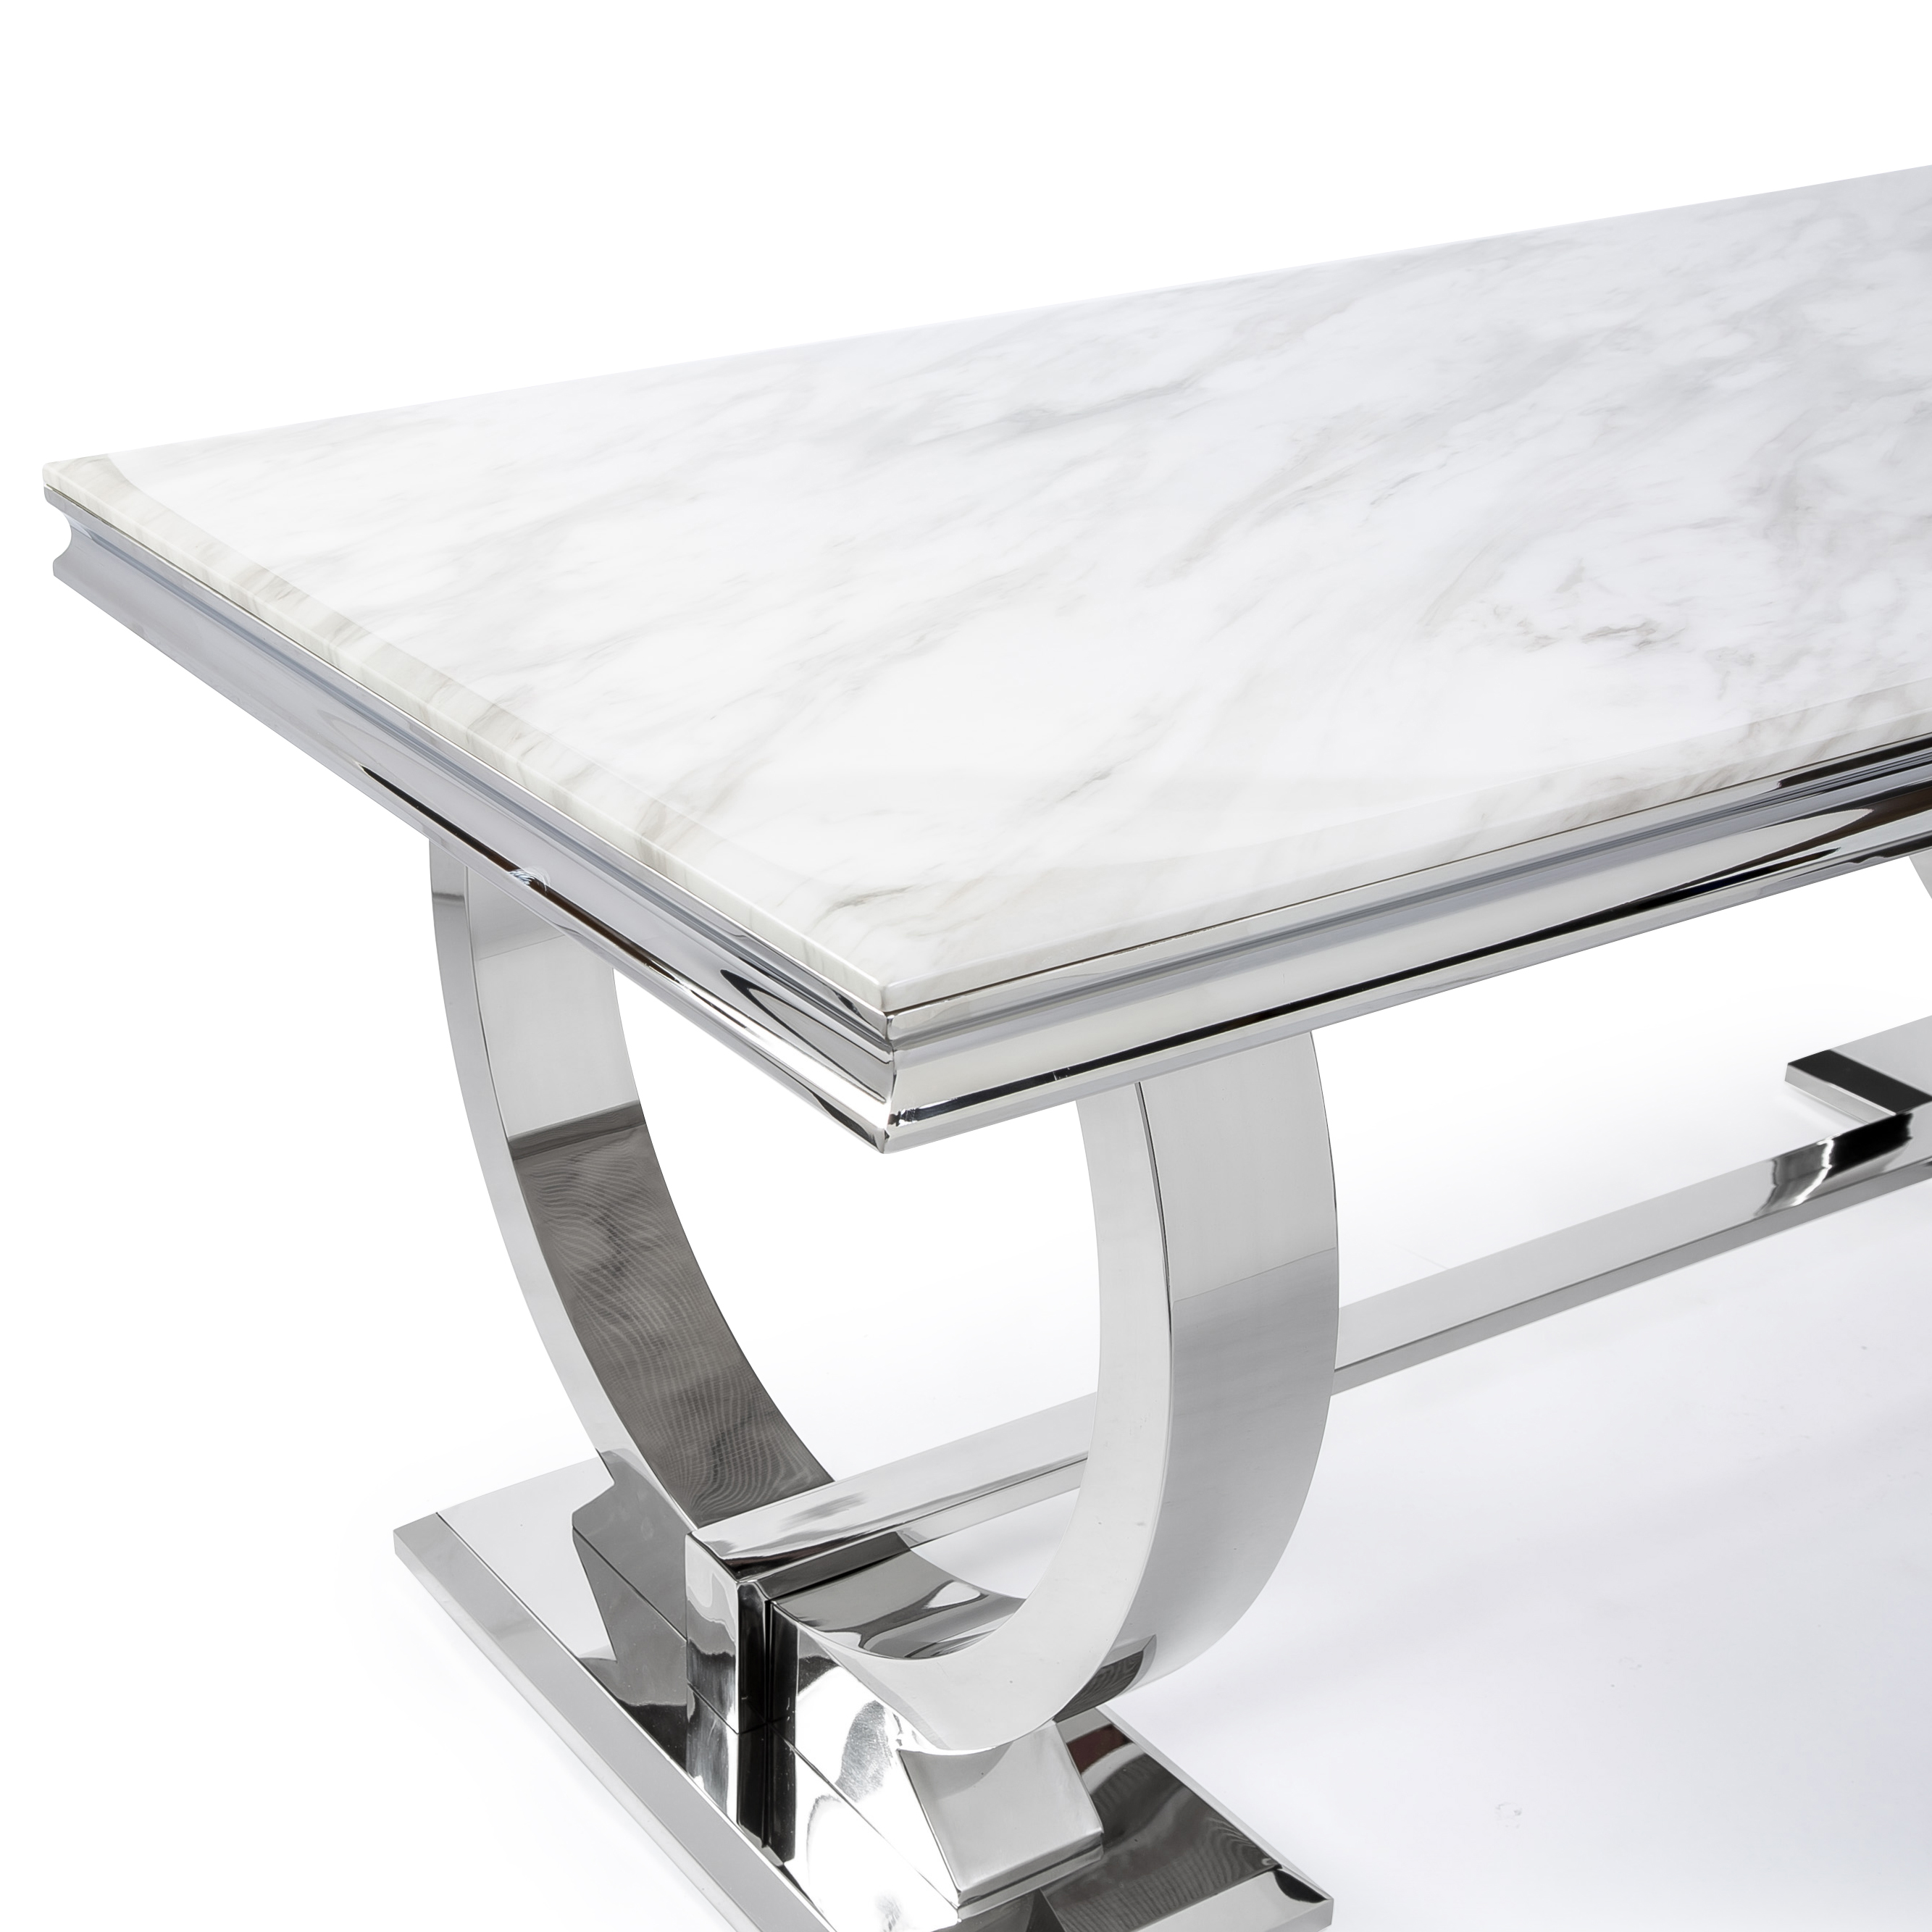 Siena 1.8M White Marble Polished Steel Dining Table